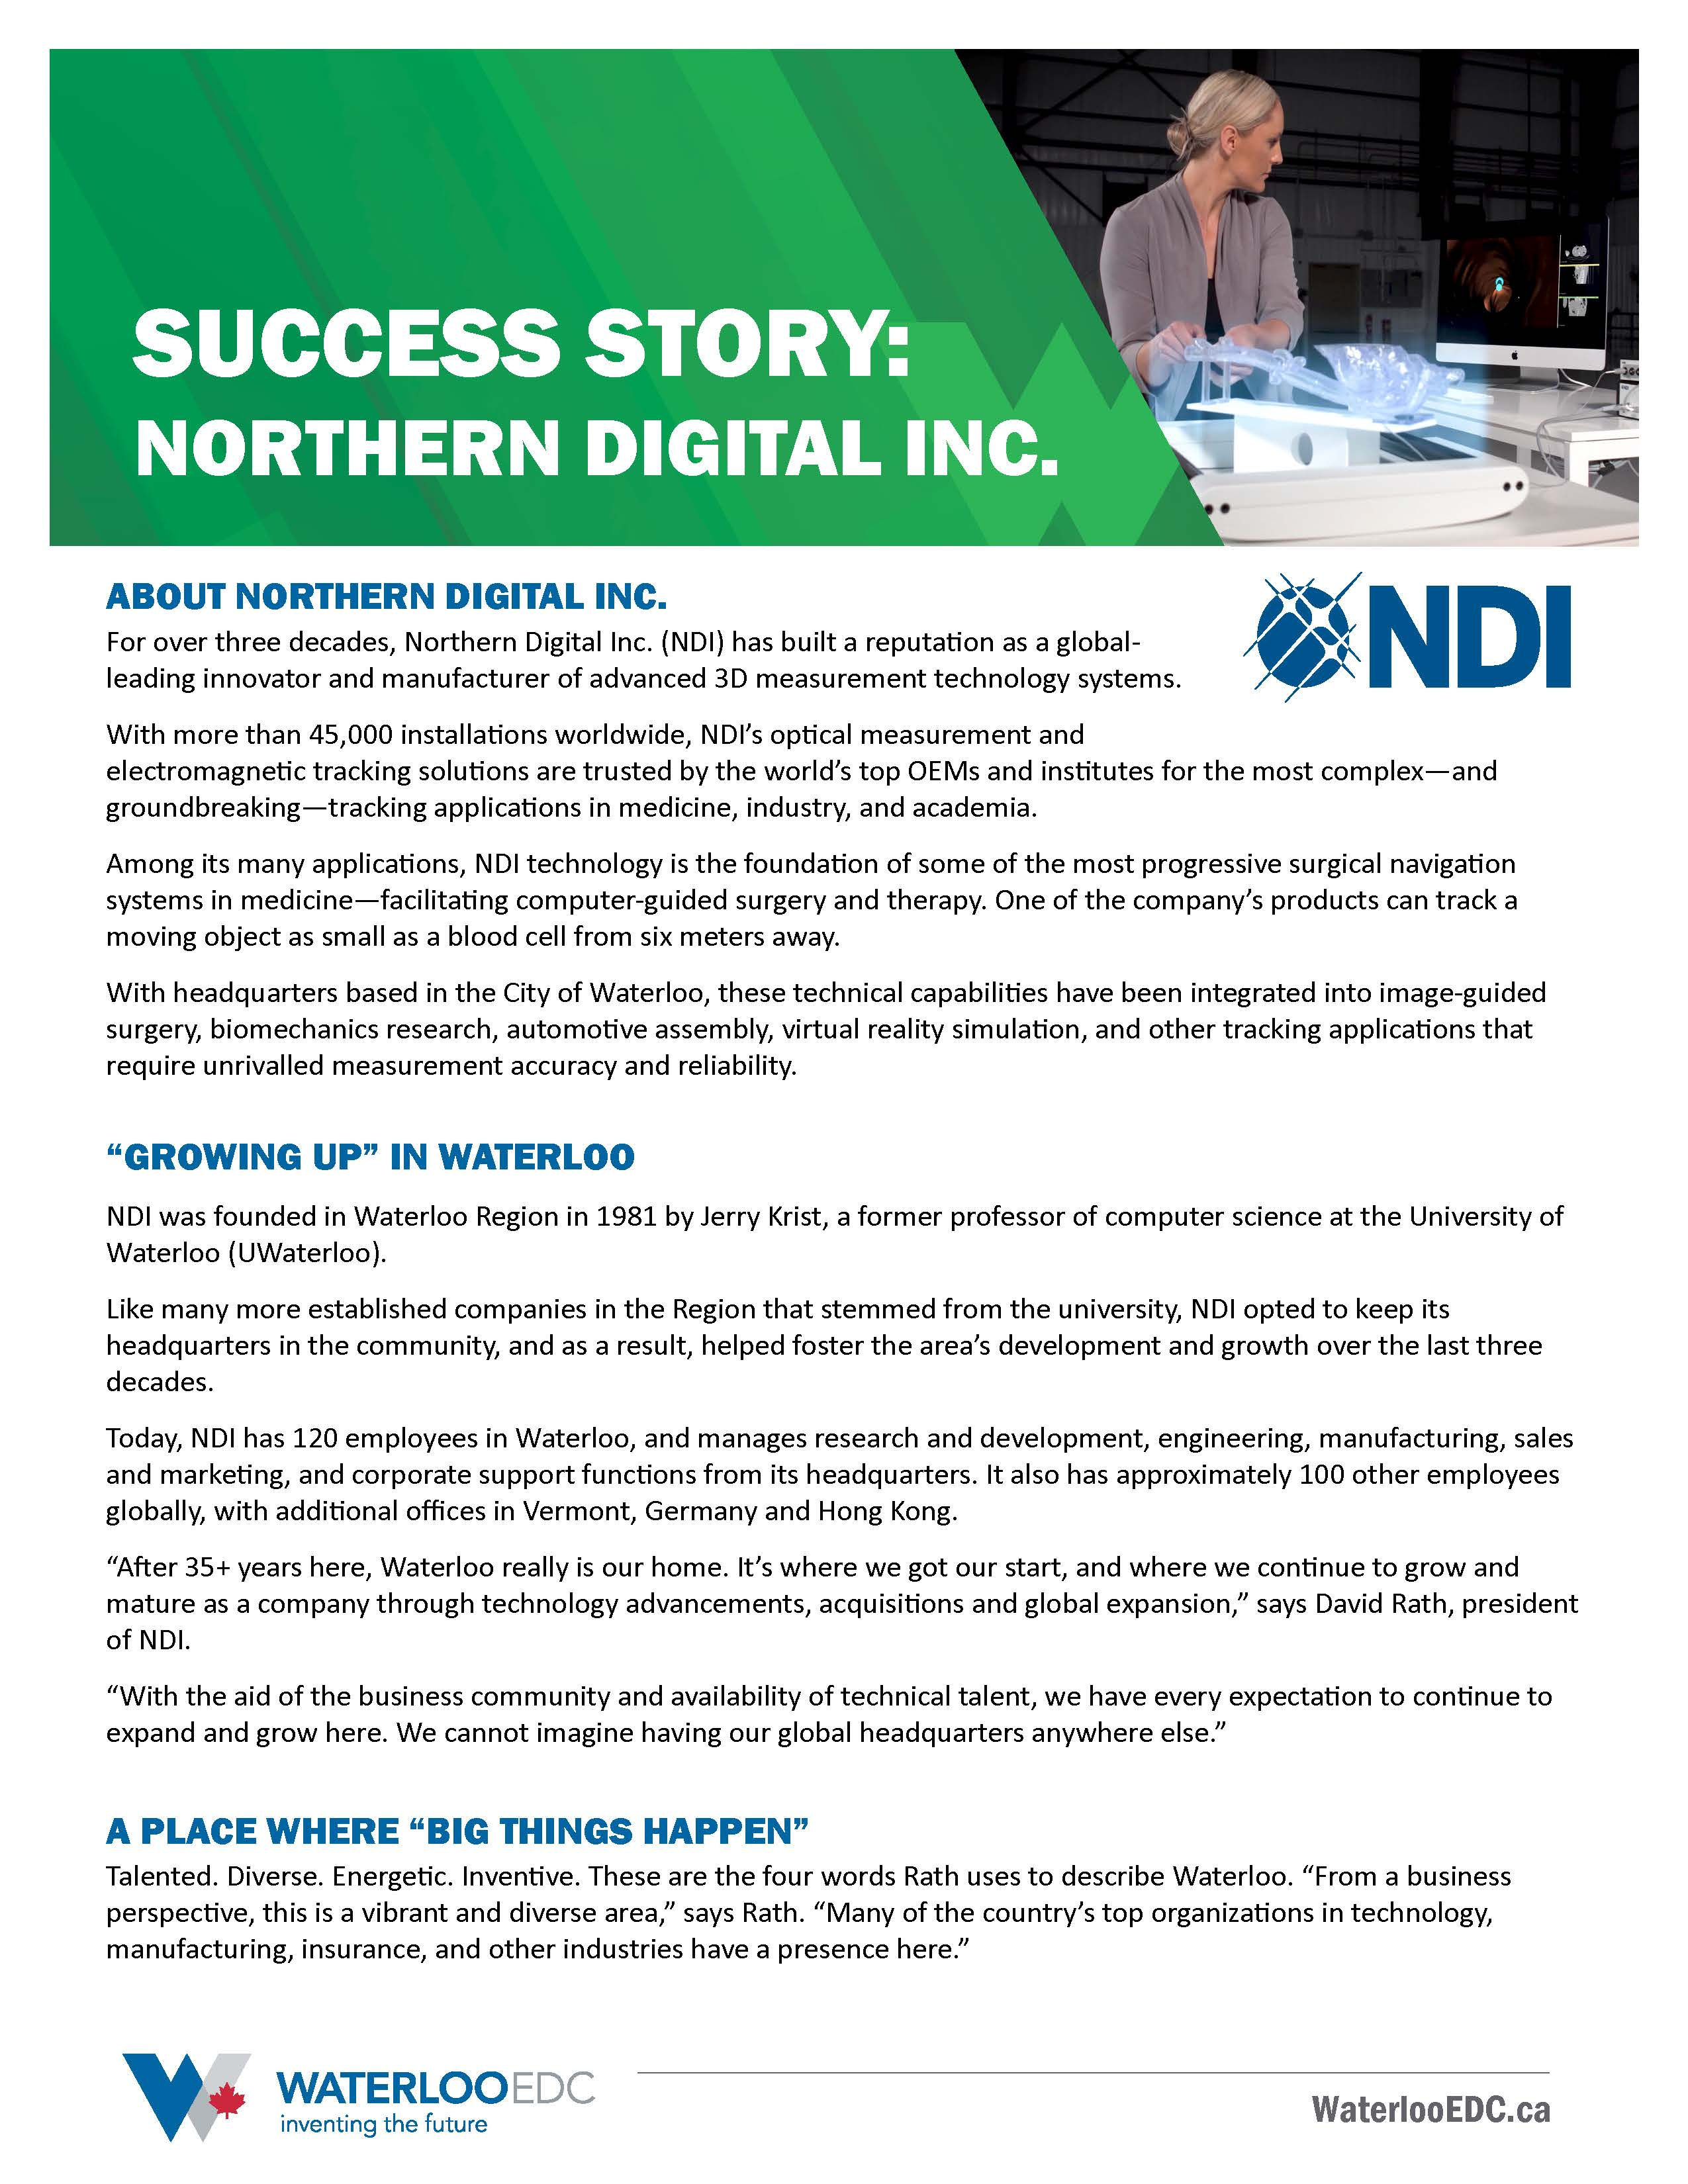 Success Story: Northern Digital Inc.